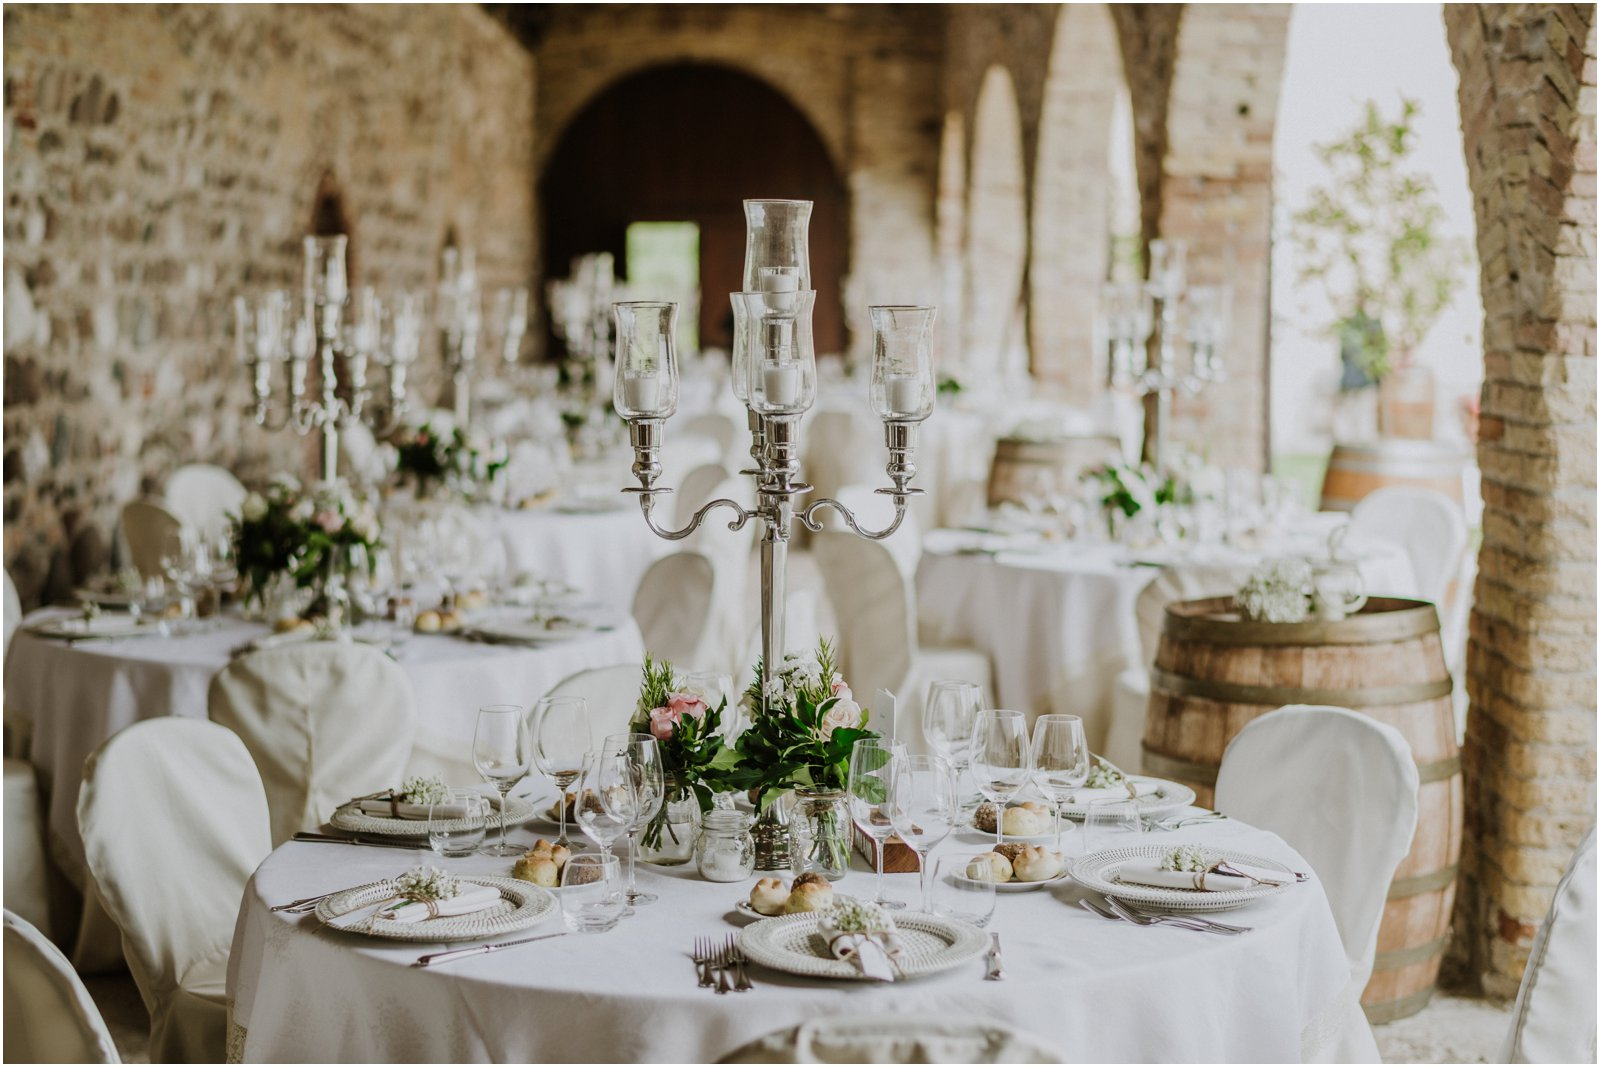 Matrimonio Country Chic Pavia : Matrimonio country chic foorevent